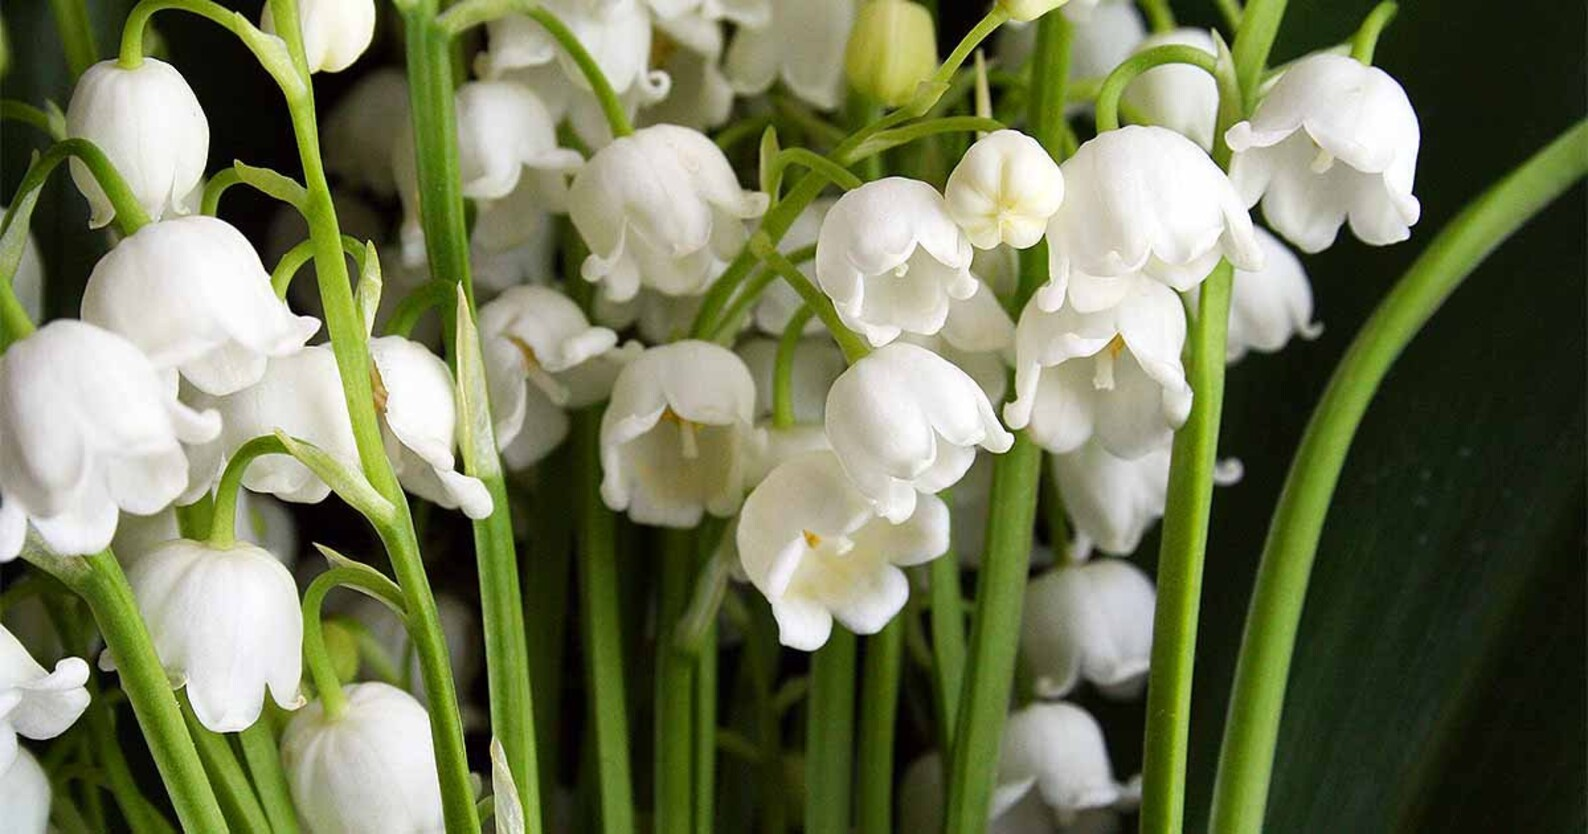 Lily of the Valley Convallaria majalis fragrant flower bulbs